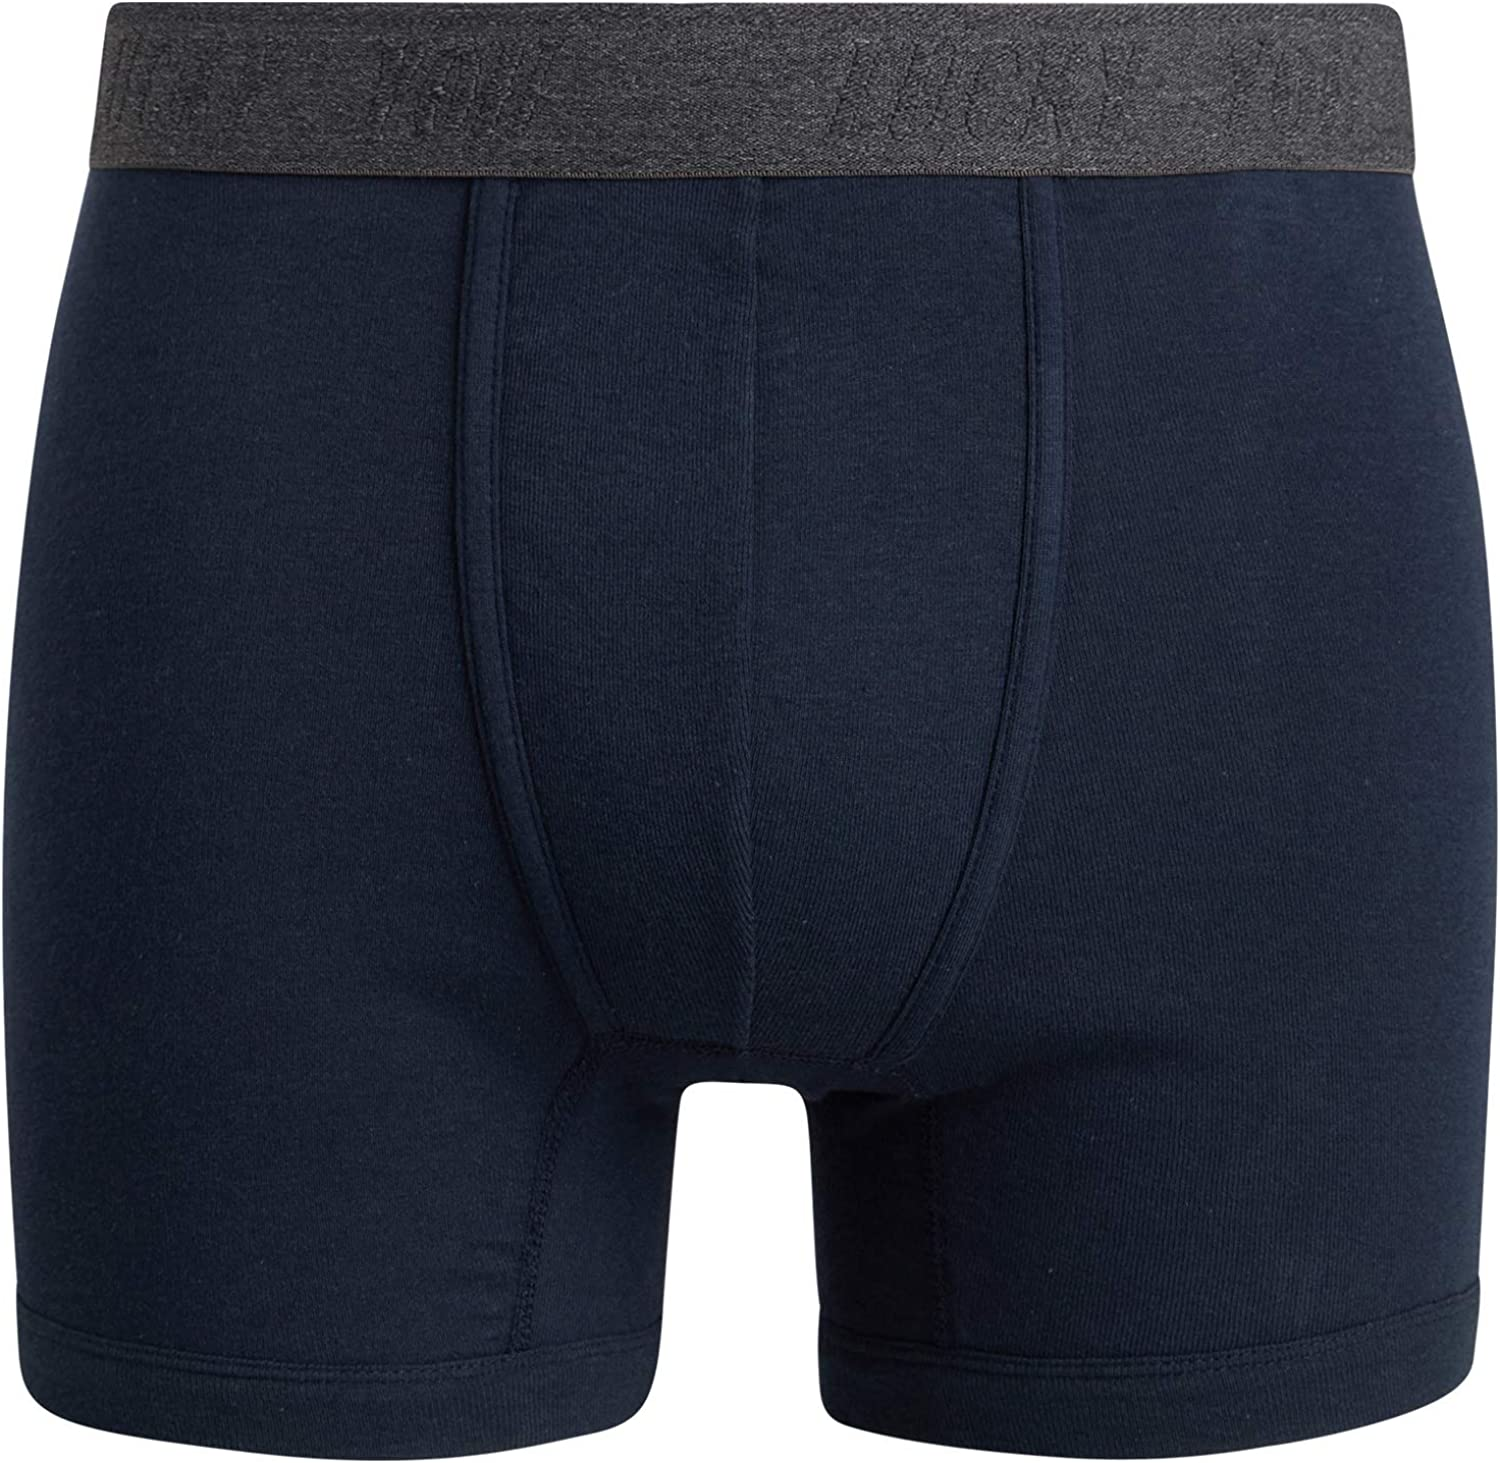 Size Large All Blues 3 Pack Lucky Brand Mens Cotton Modal Boxer Briefs